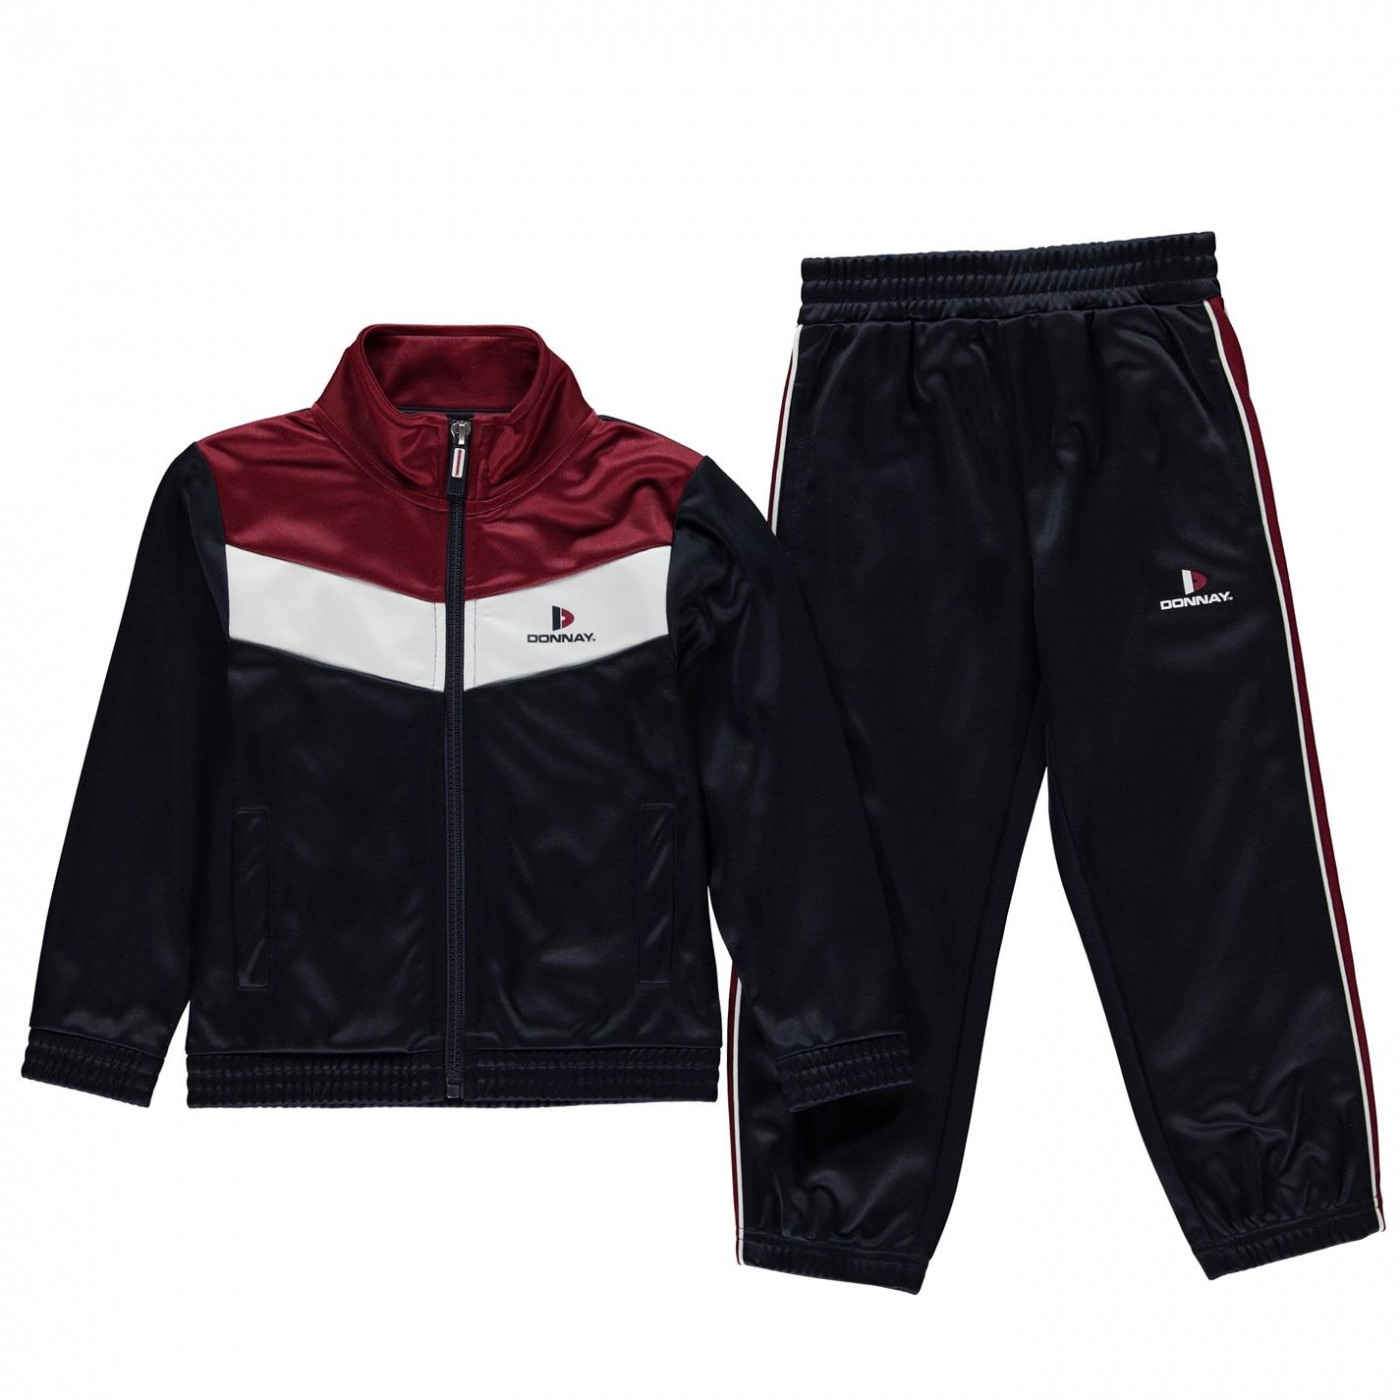 cb0c50cacc Donnay Poly Tracksuit Junior Boys - FACTCOOL